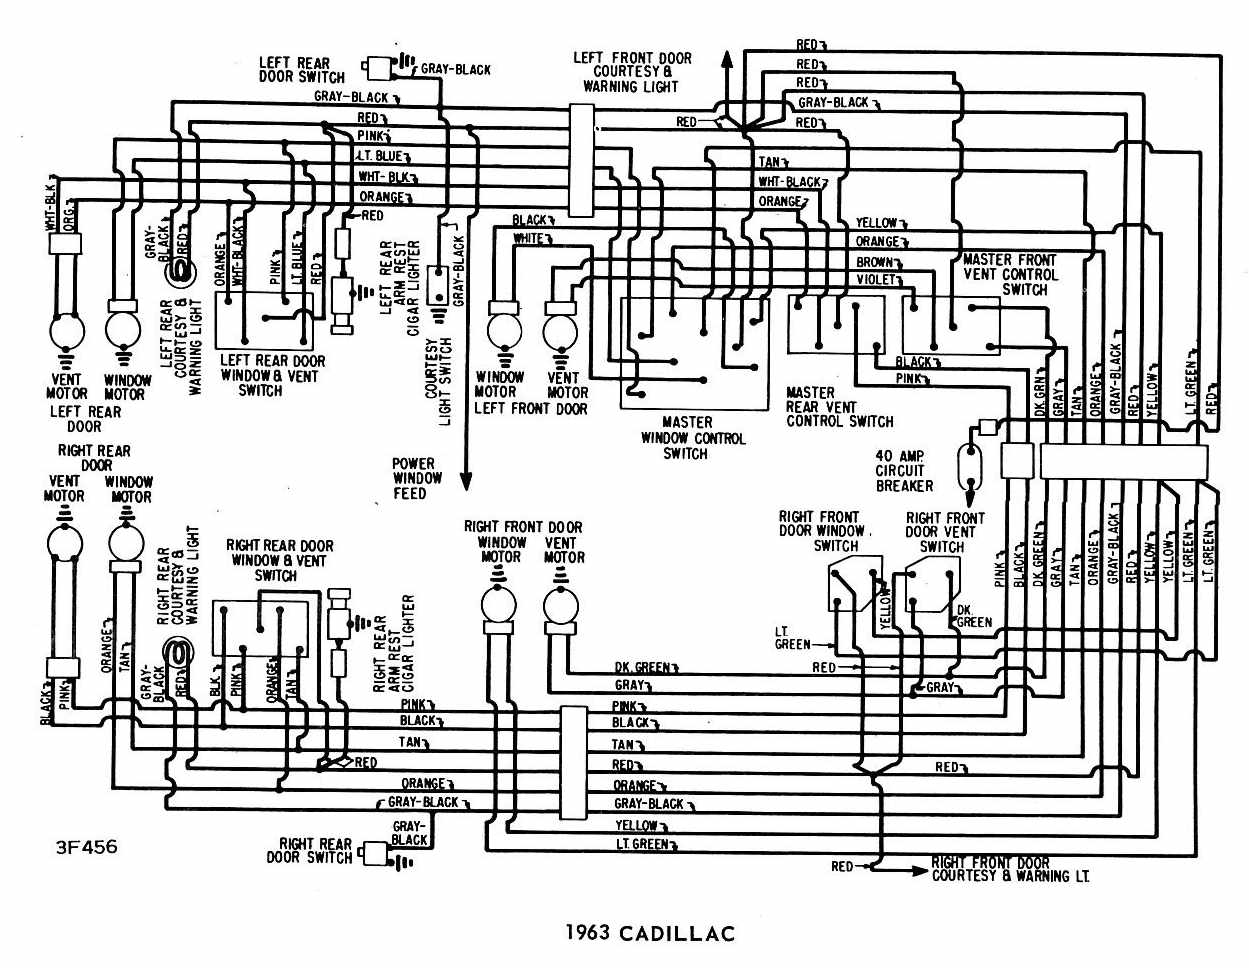 Cadillac 1963 Windows Wiring Diagram radio wire diagram 2001 aztek radio free wiring diagrams 1954 Pontiac Chieftain at n-0.co